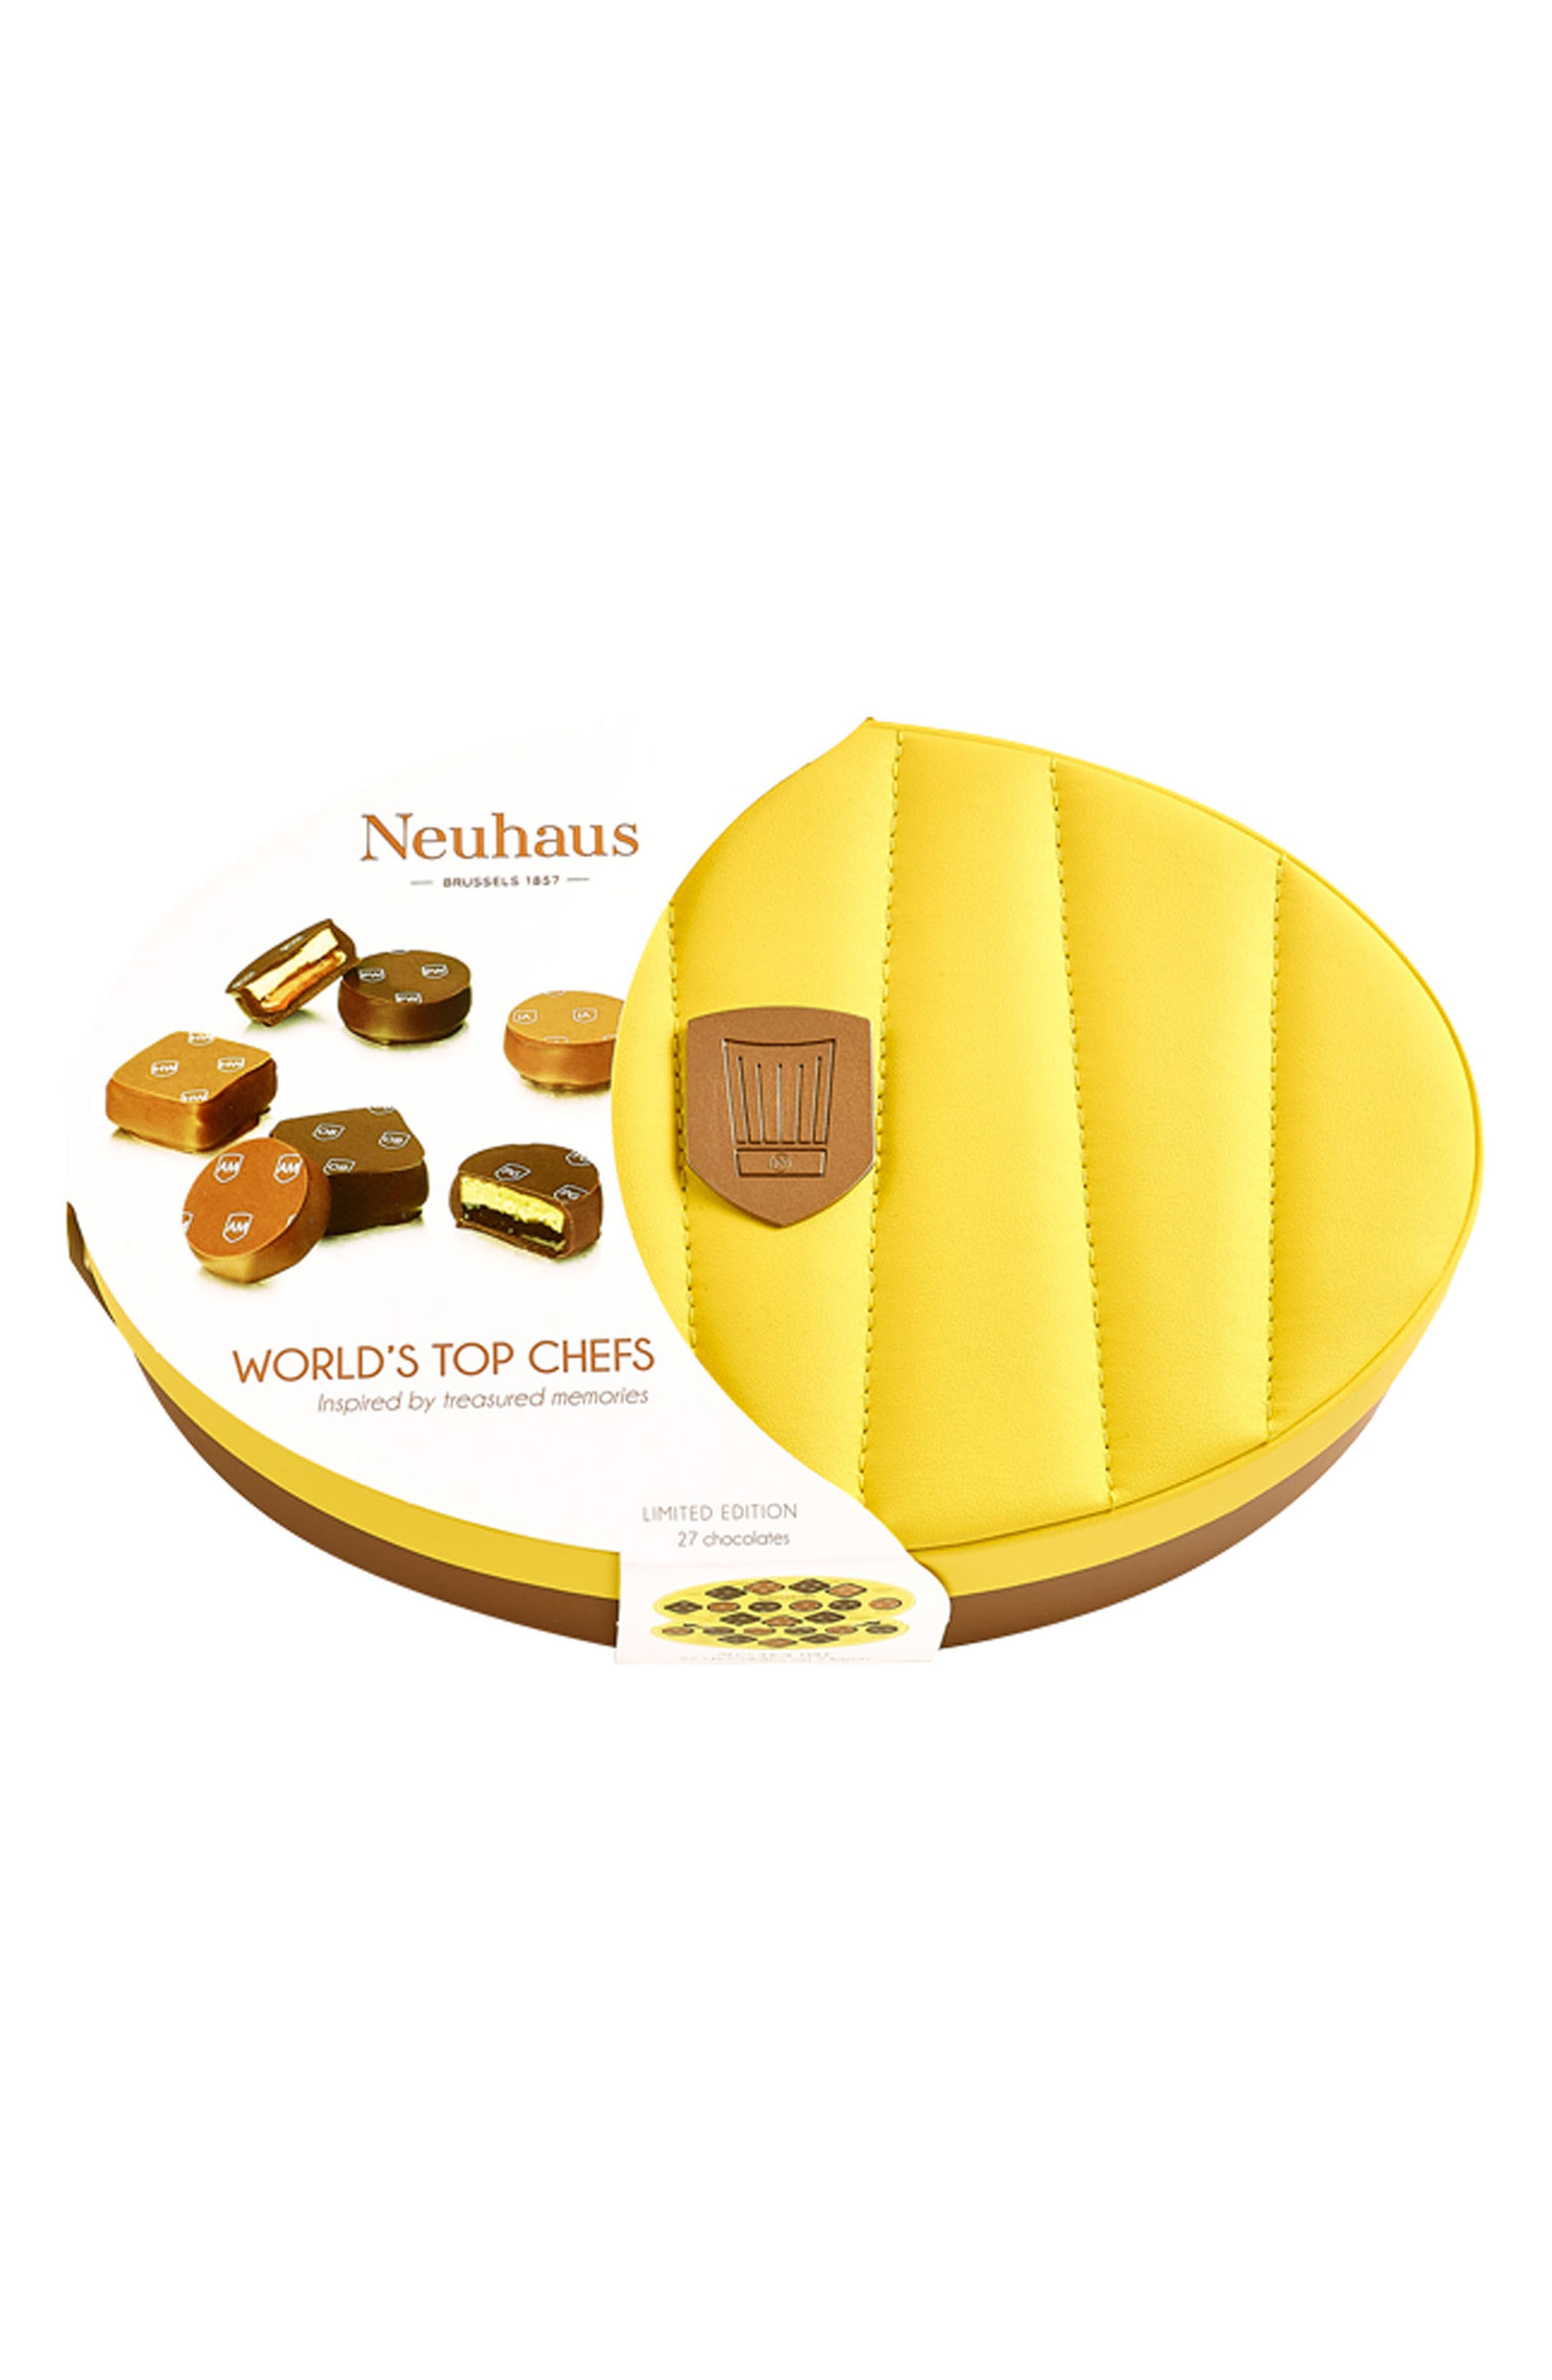 World's Top Chefs 27-Piece Chocolate Gift Set,                             Alternate thumbnail 2, color,                             YELLOW